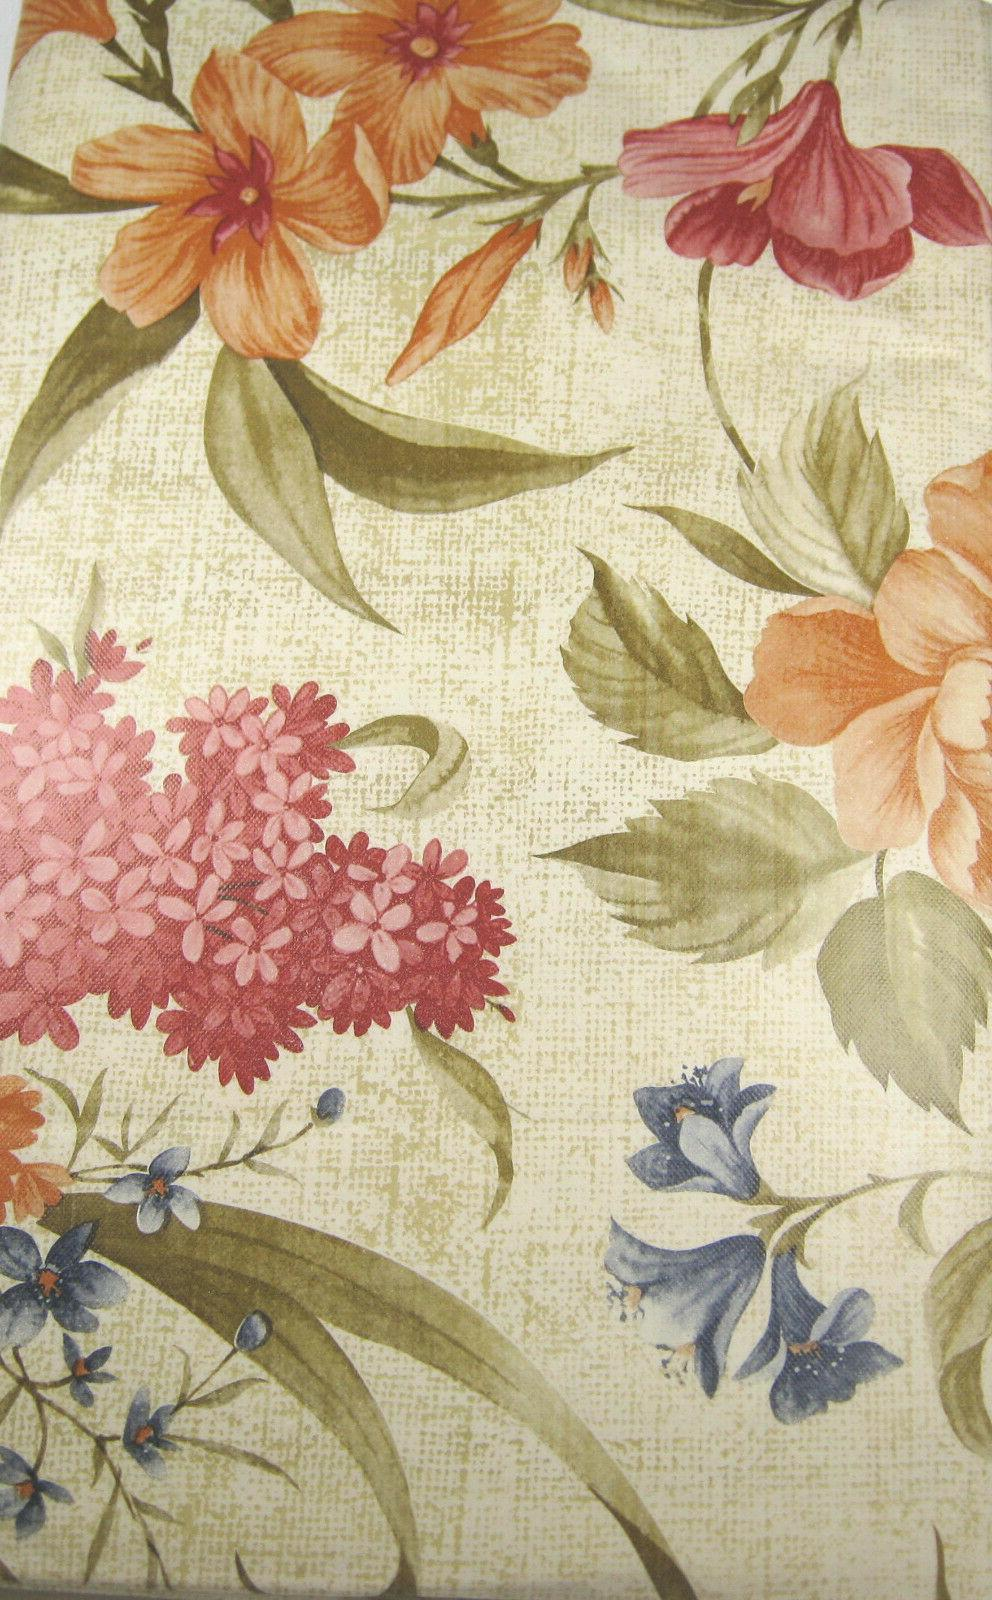 Floral on Flannel Sizes Oblong